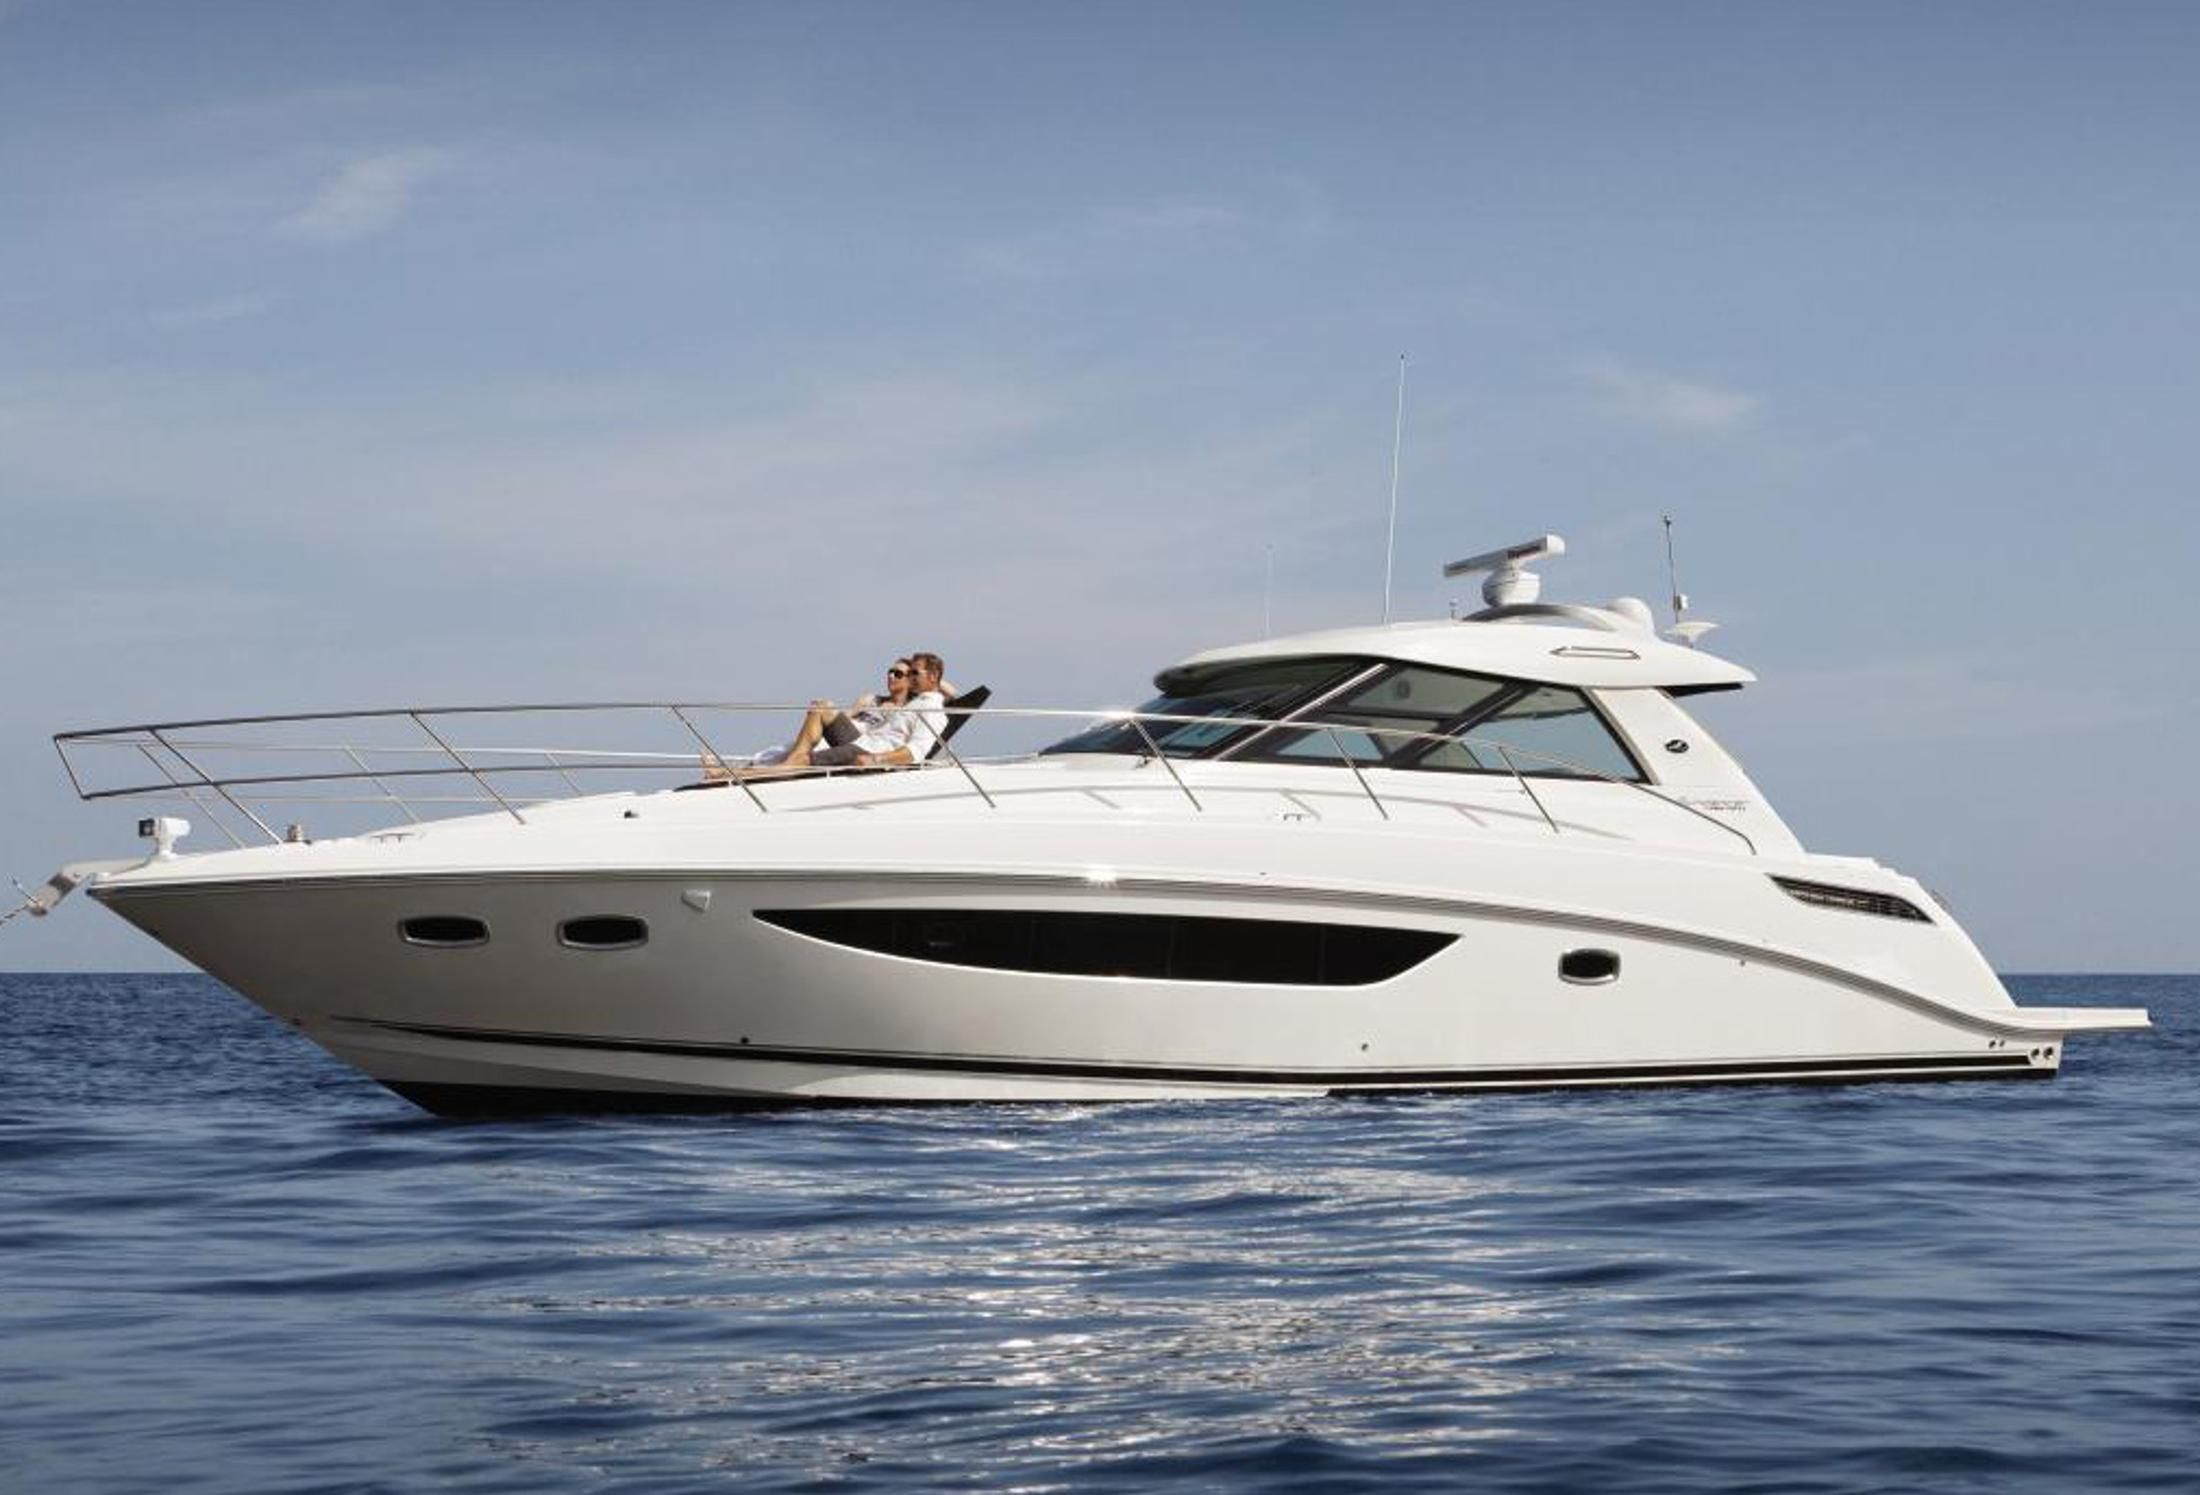 2013 sea ray 450 sundancer power boat for sale www for Sea ray motor yacht for sale